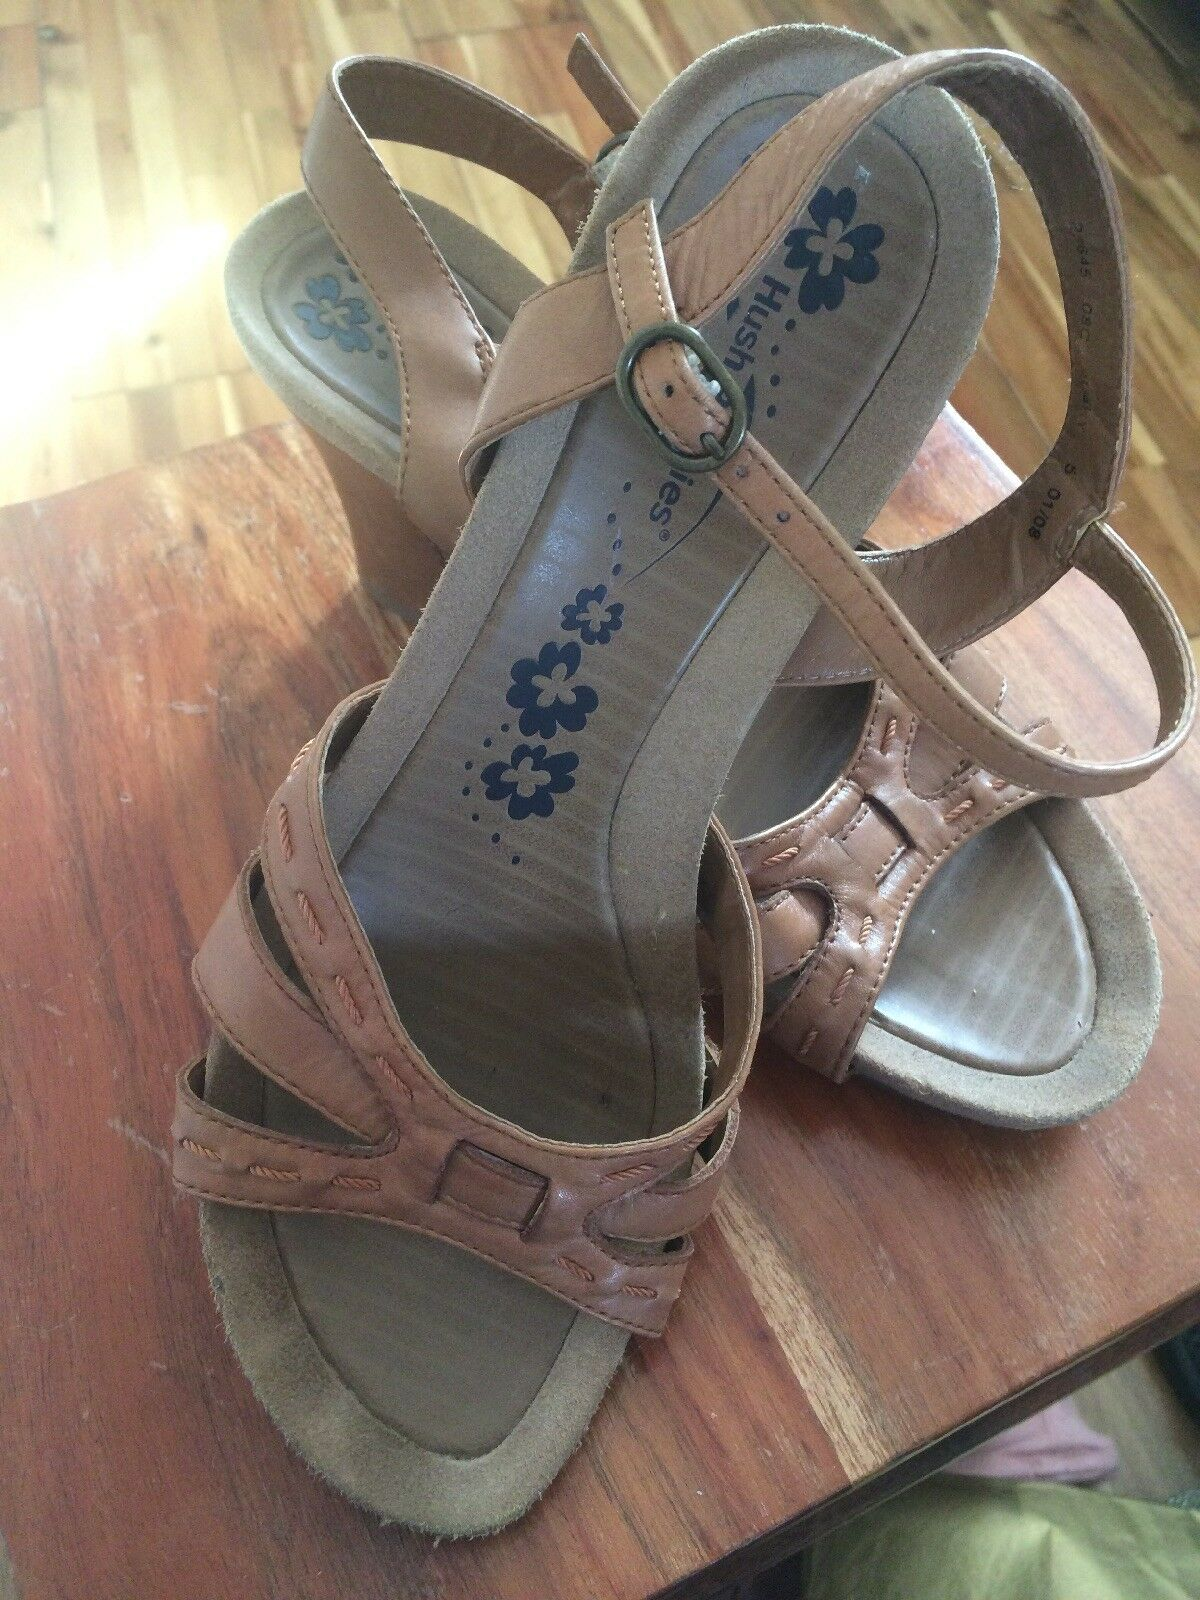 Hush Puppy Dusky Tan Leather Worn Wedge Sandal Size 5 Worn Leather Once 91d309